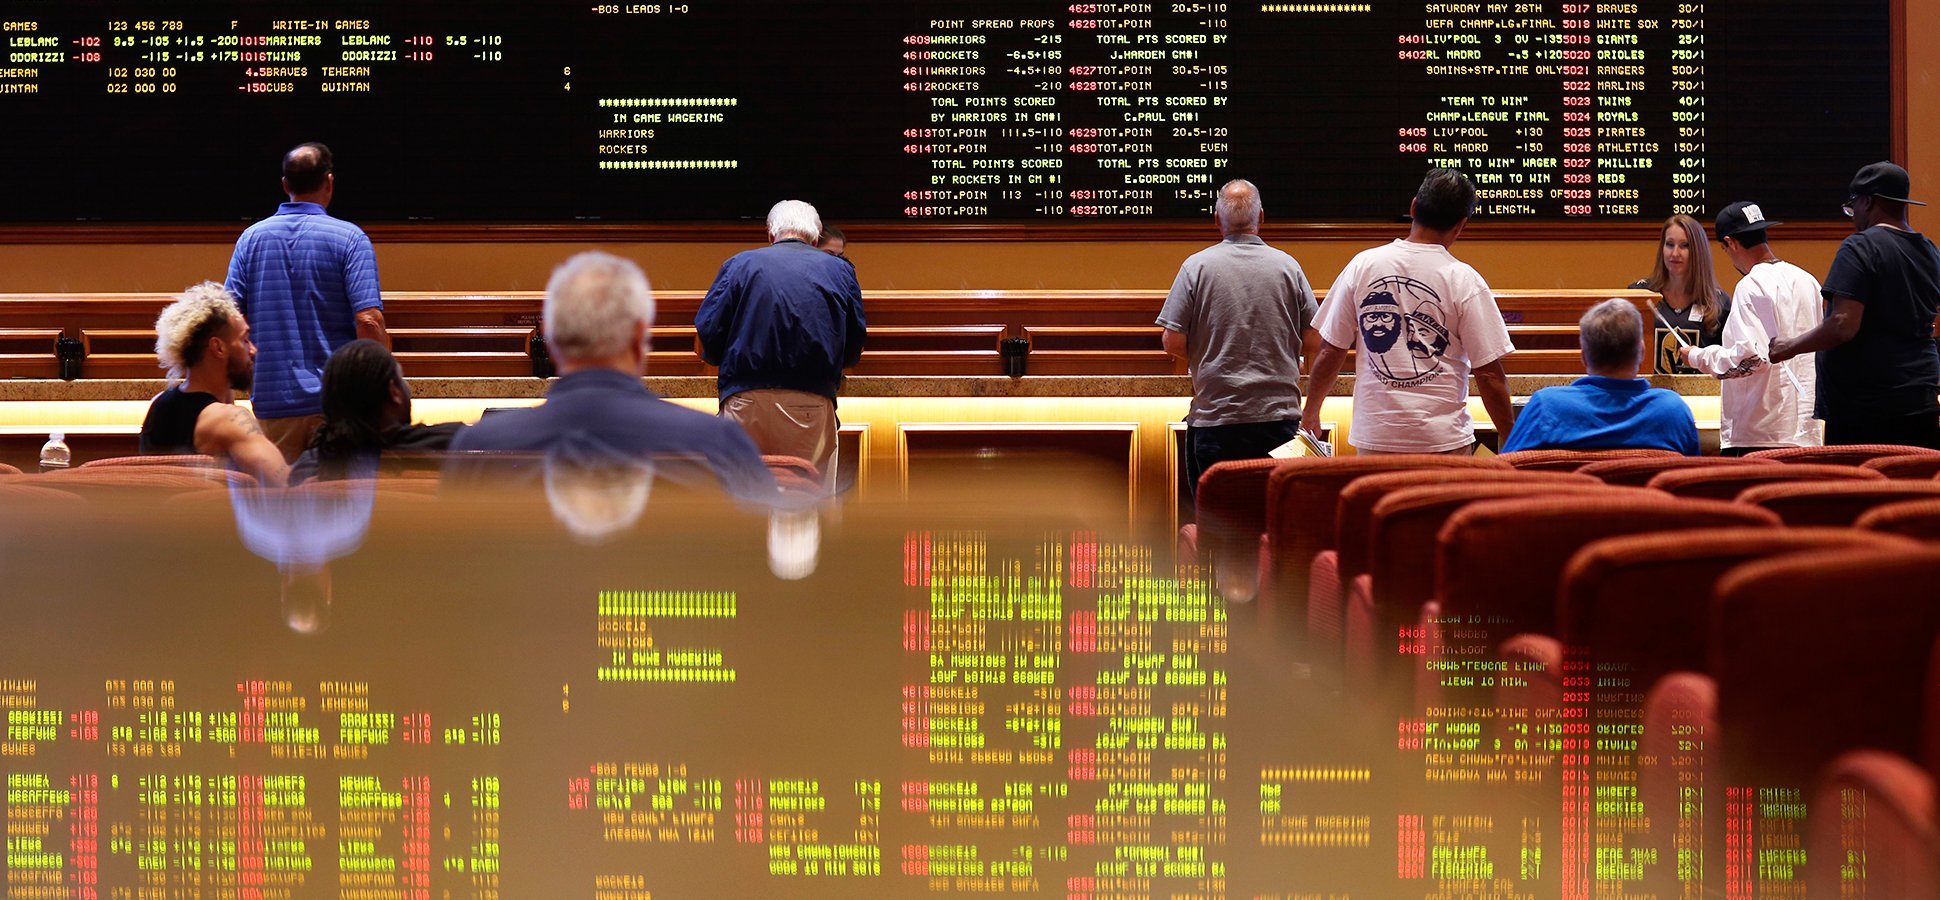 sports betting games